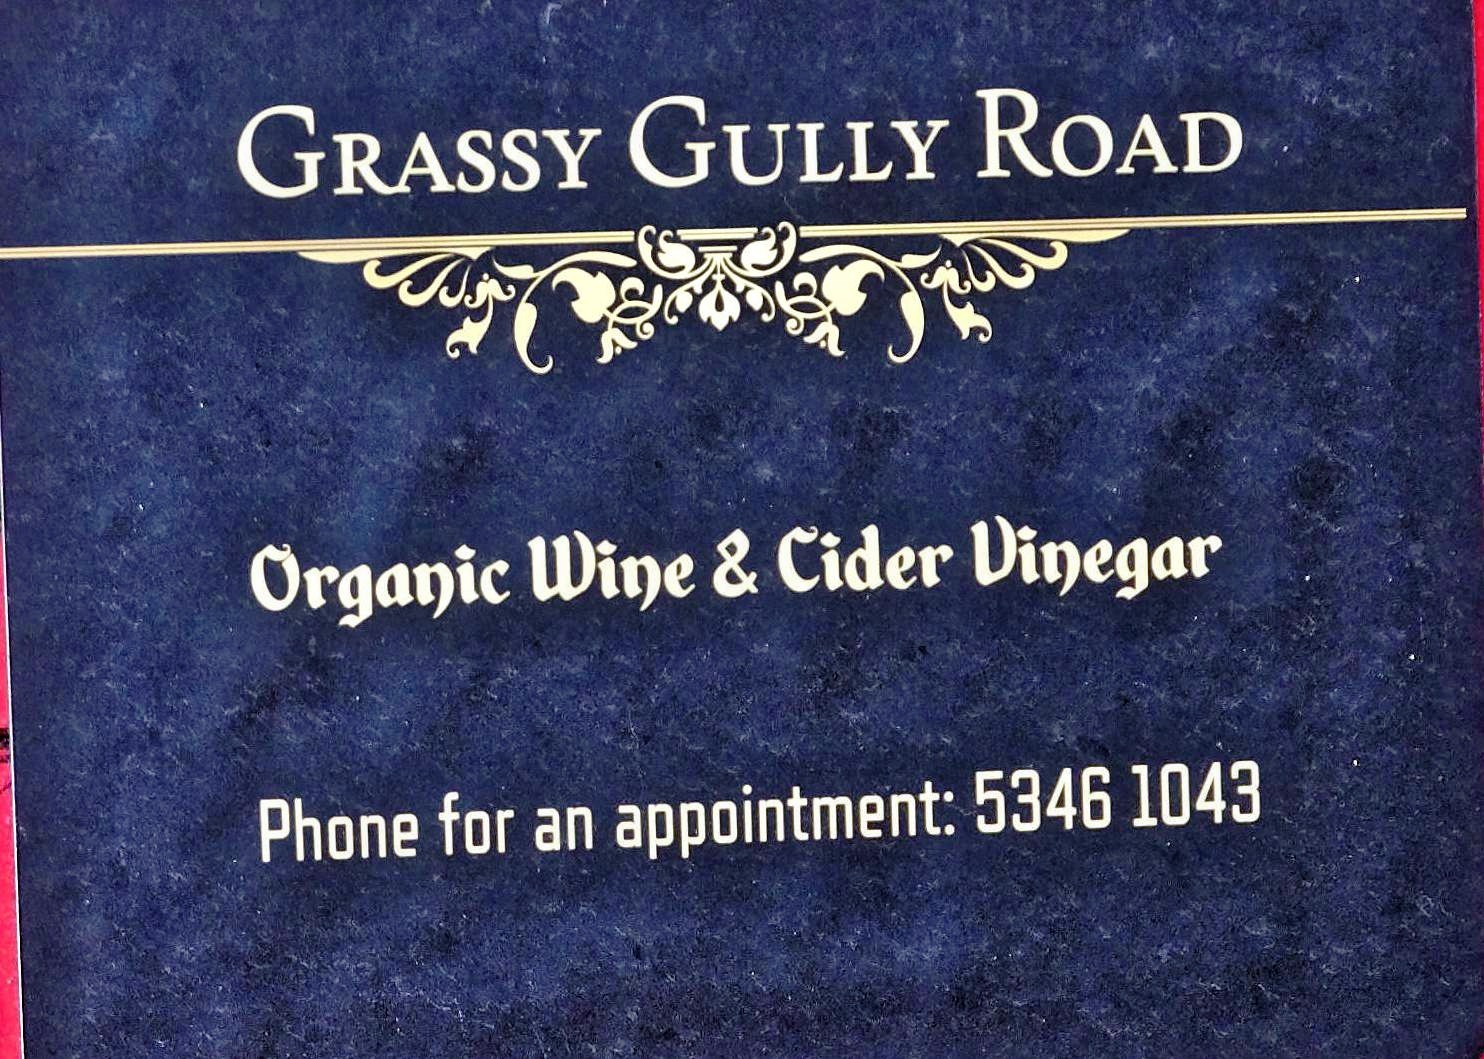 Grassy-Gully-Organic-Wine-1-detail.jpeg